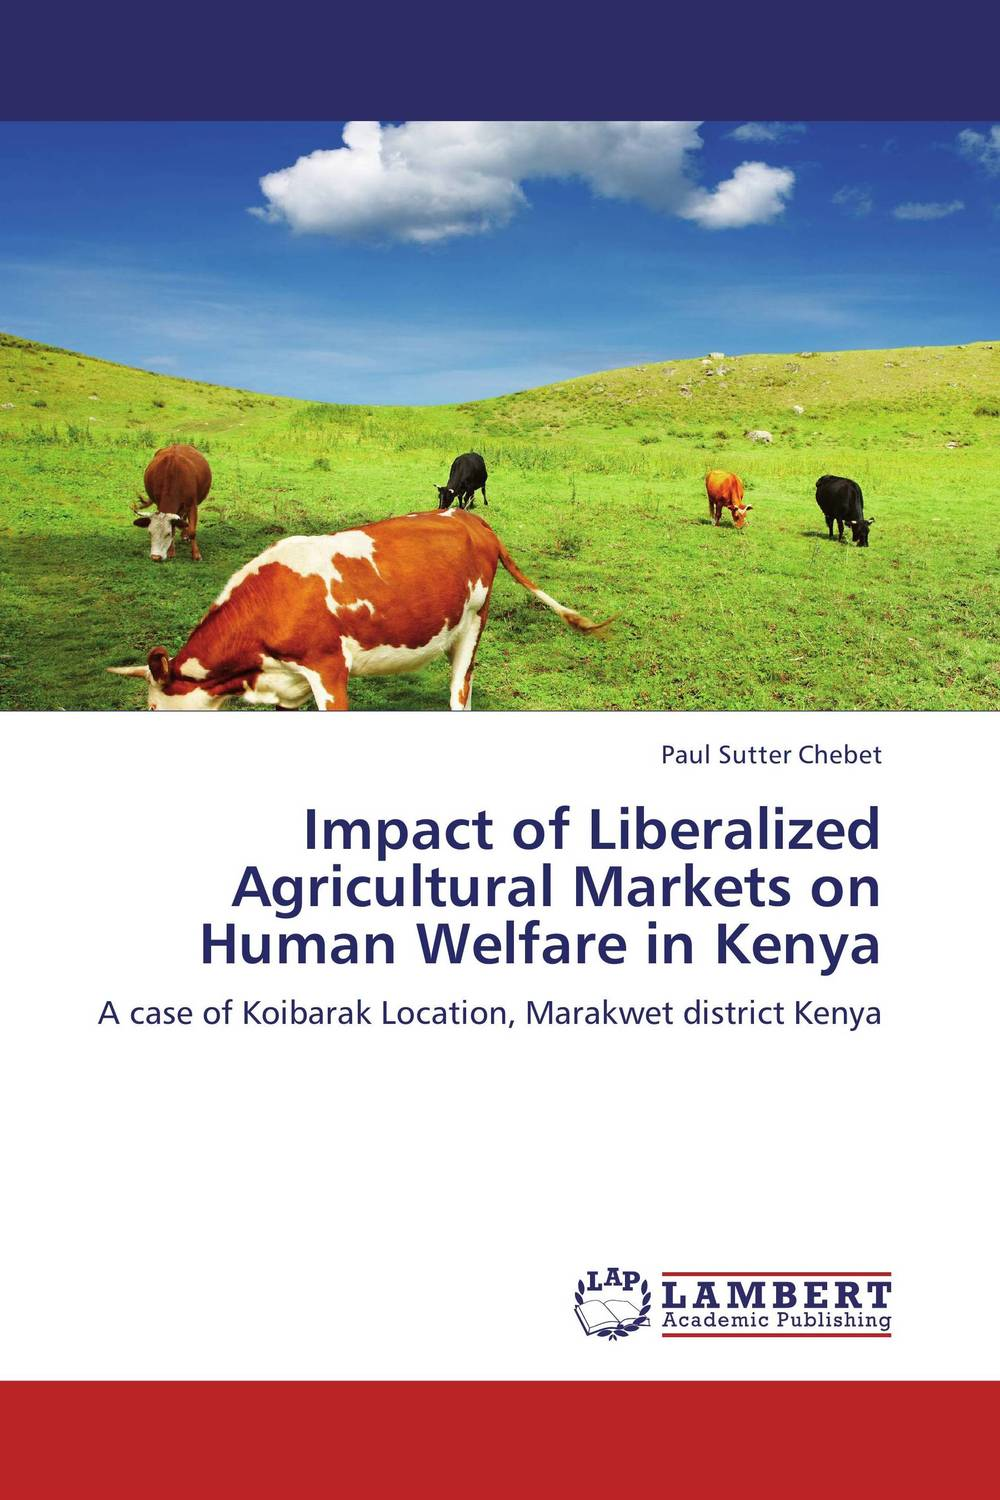 Impact of Liberalized Agricultural Markets on Human Welfare in Kenya sikhulumile sinyolo smallholder irrigation water security and rural household welfare